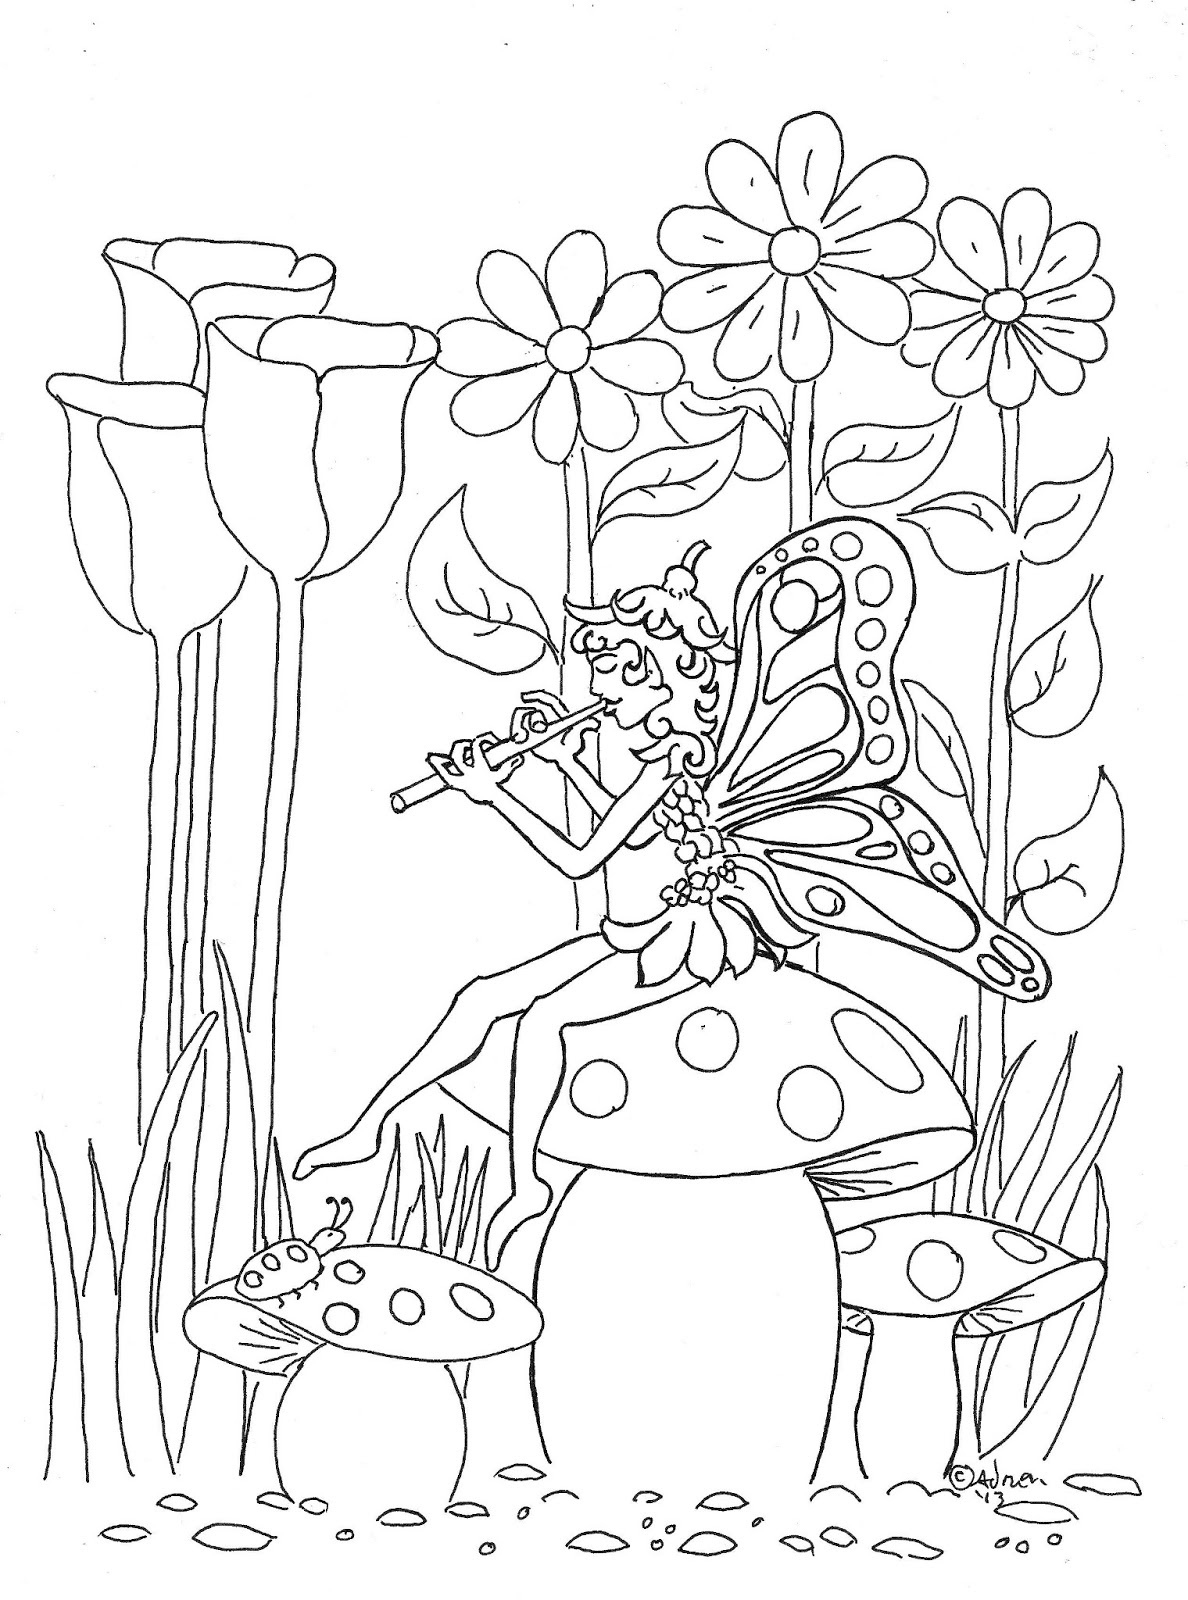 fairies coloring pages coloring pages for kids by mr adron pixie fairy print coloring pages fairies